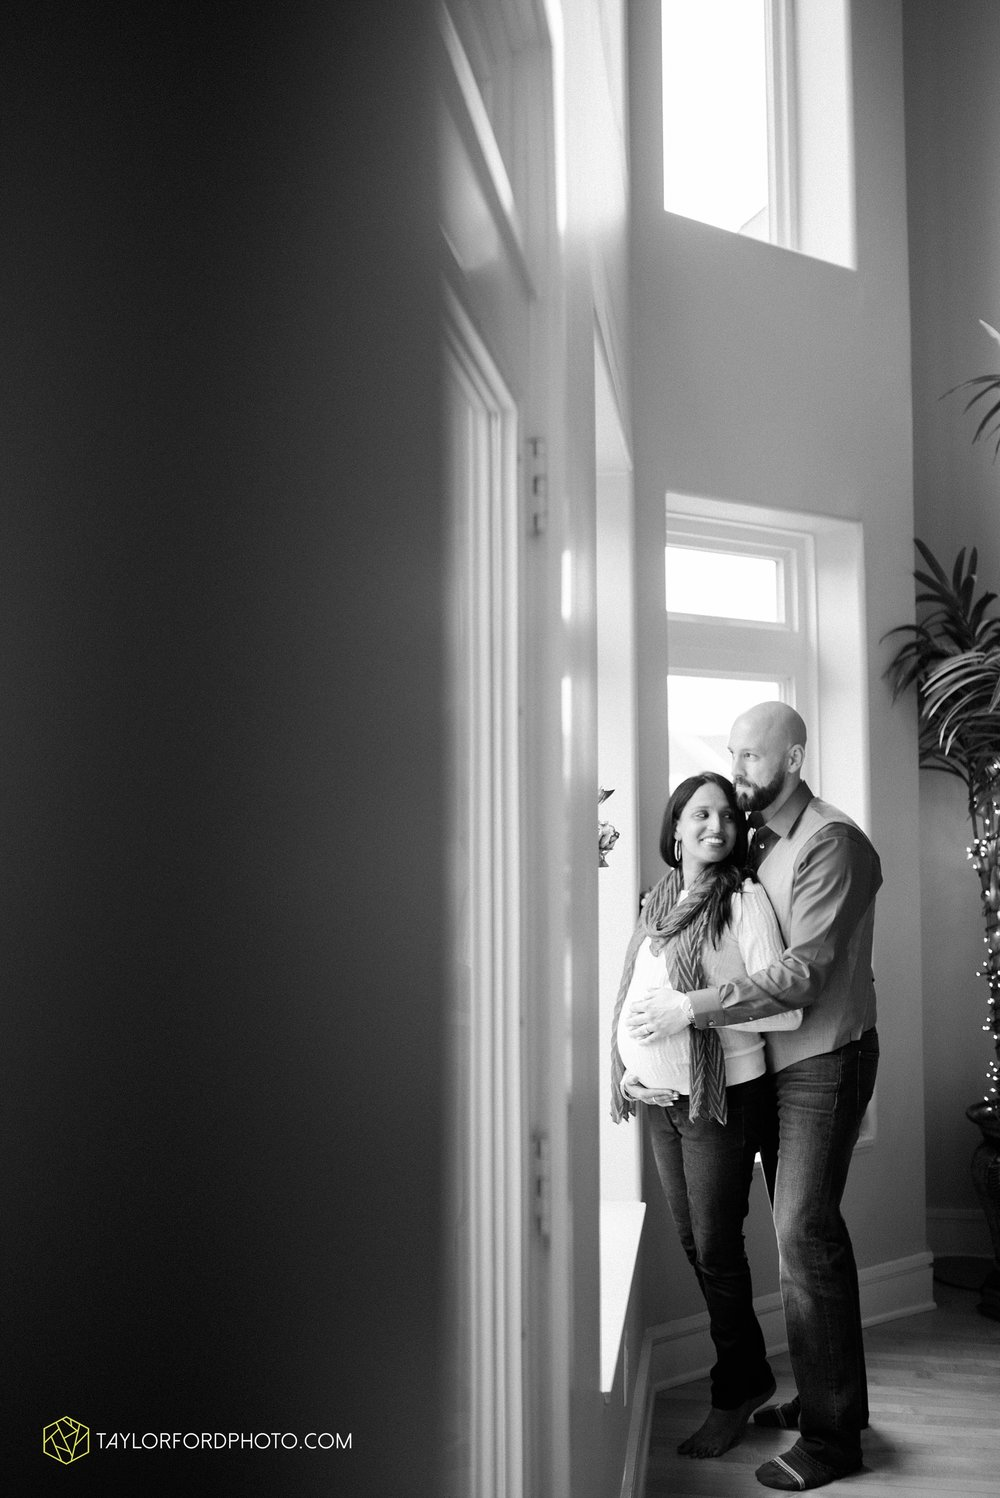 brentwood_nashville_tennessee_maternity_lifestyle_photographer_taylor_ford_4314.jpg